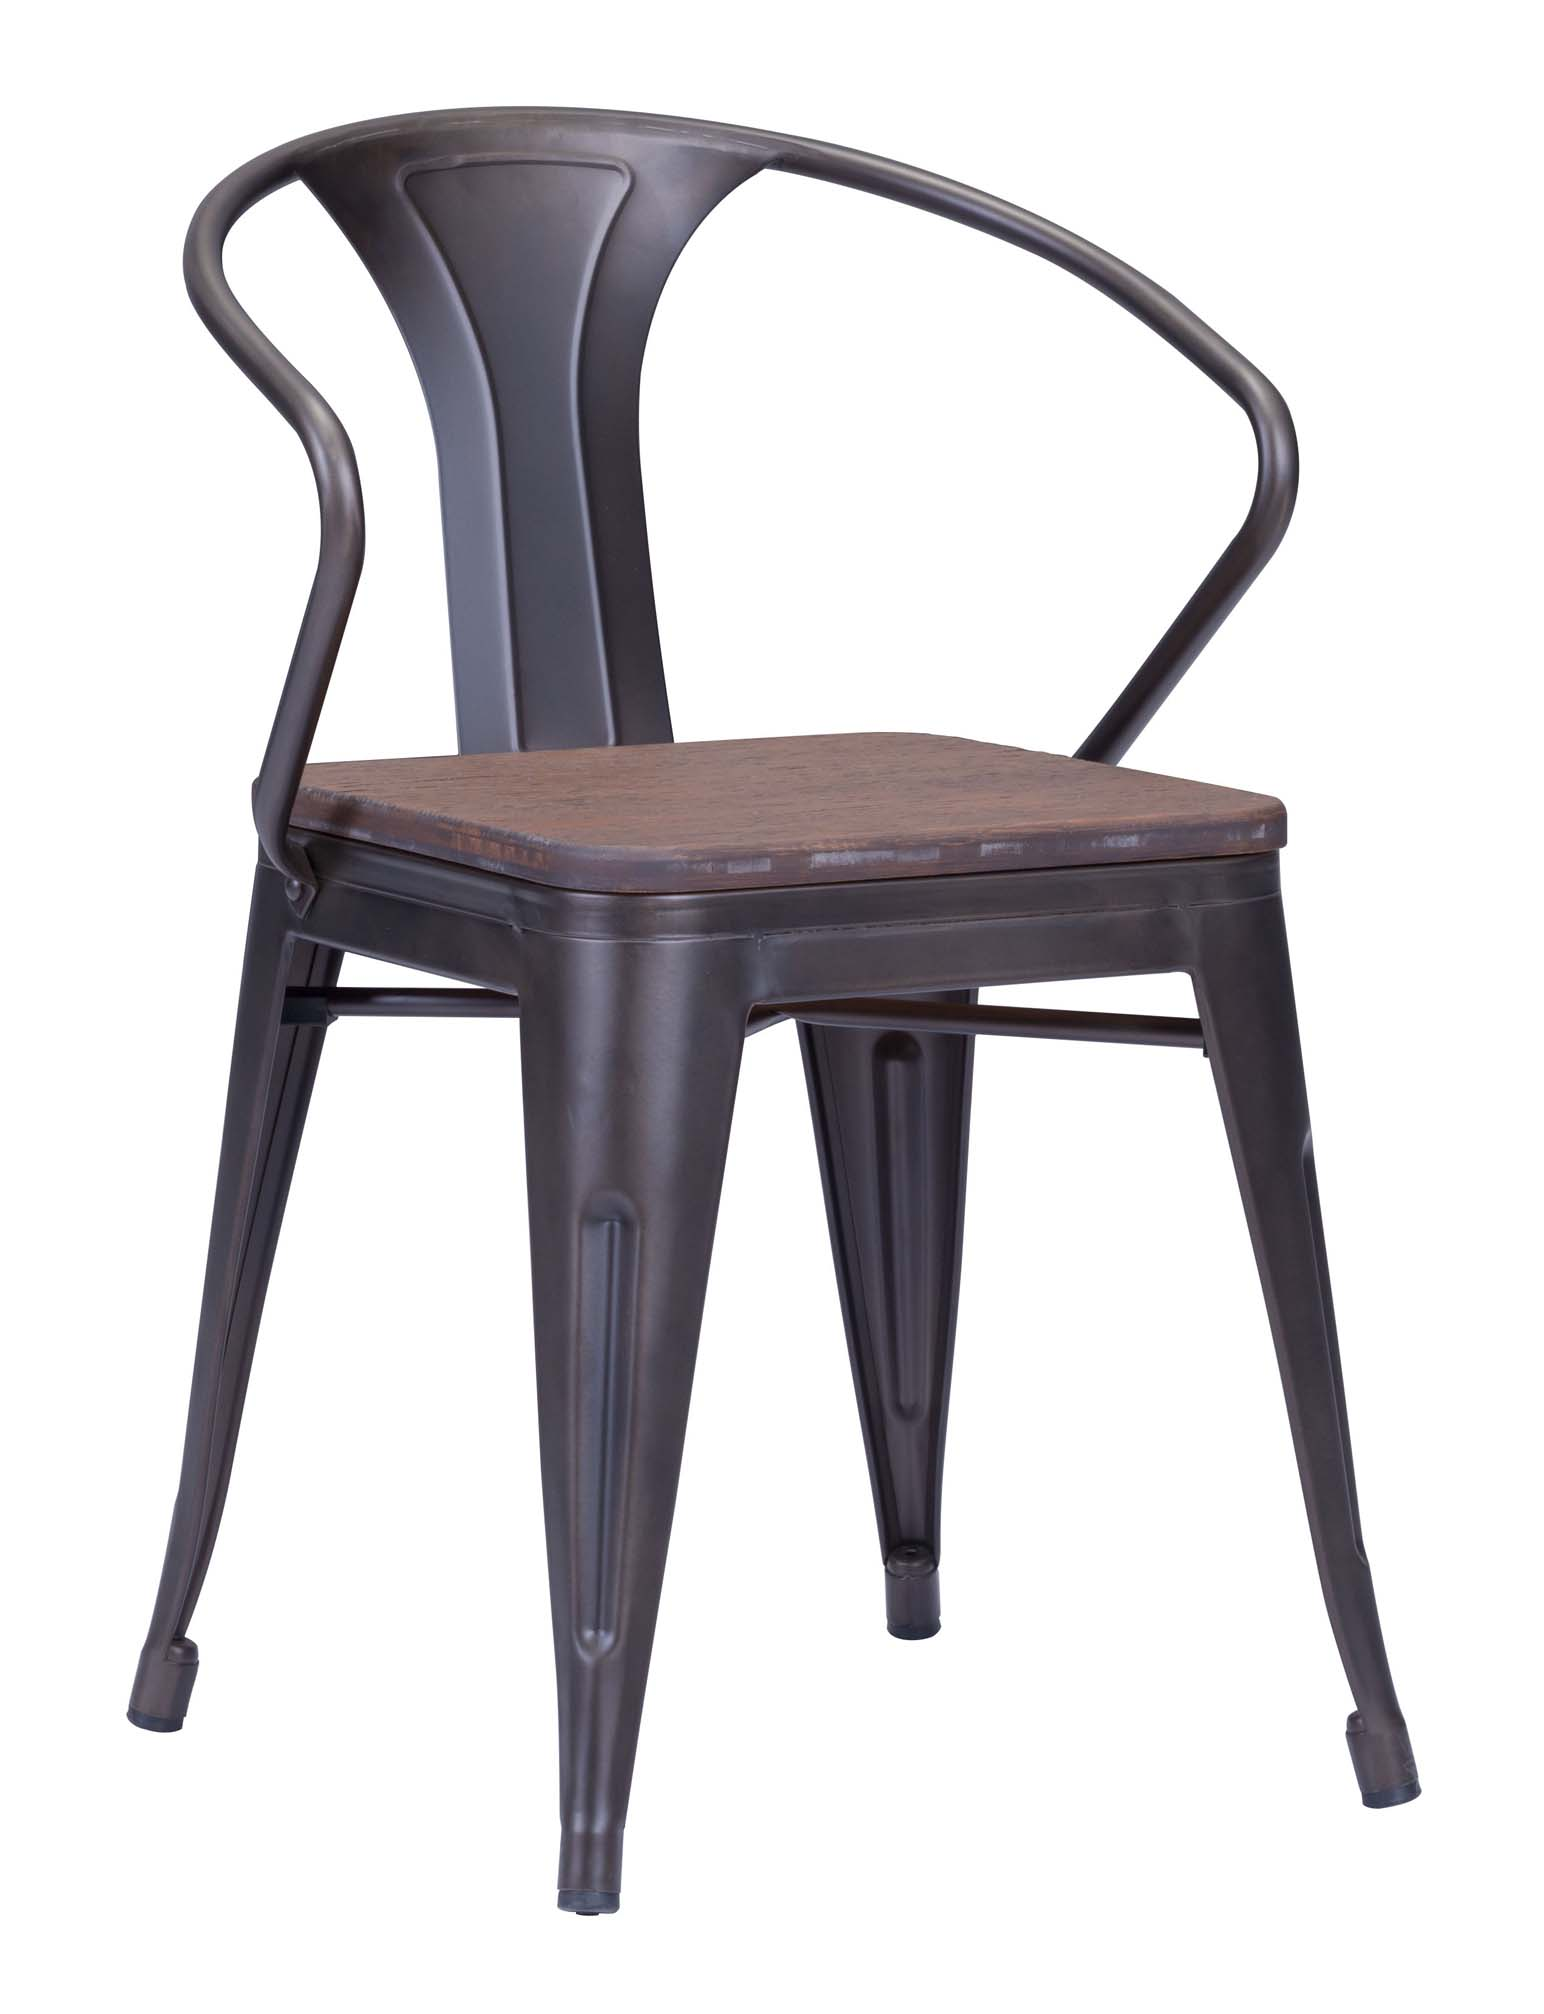 dining chair by zuo helix ...  sc 1 st  Advanced Interior Designs & ZUO HELIX DINING CHAIR WITH WOOD SEAT | GUNMETAL CHAIRS INDUSTRIAL islam-shia.org